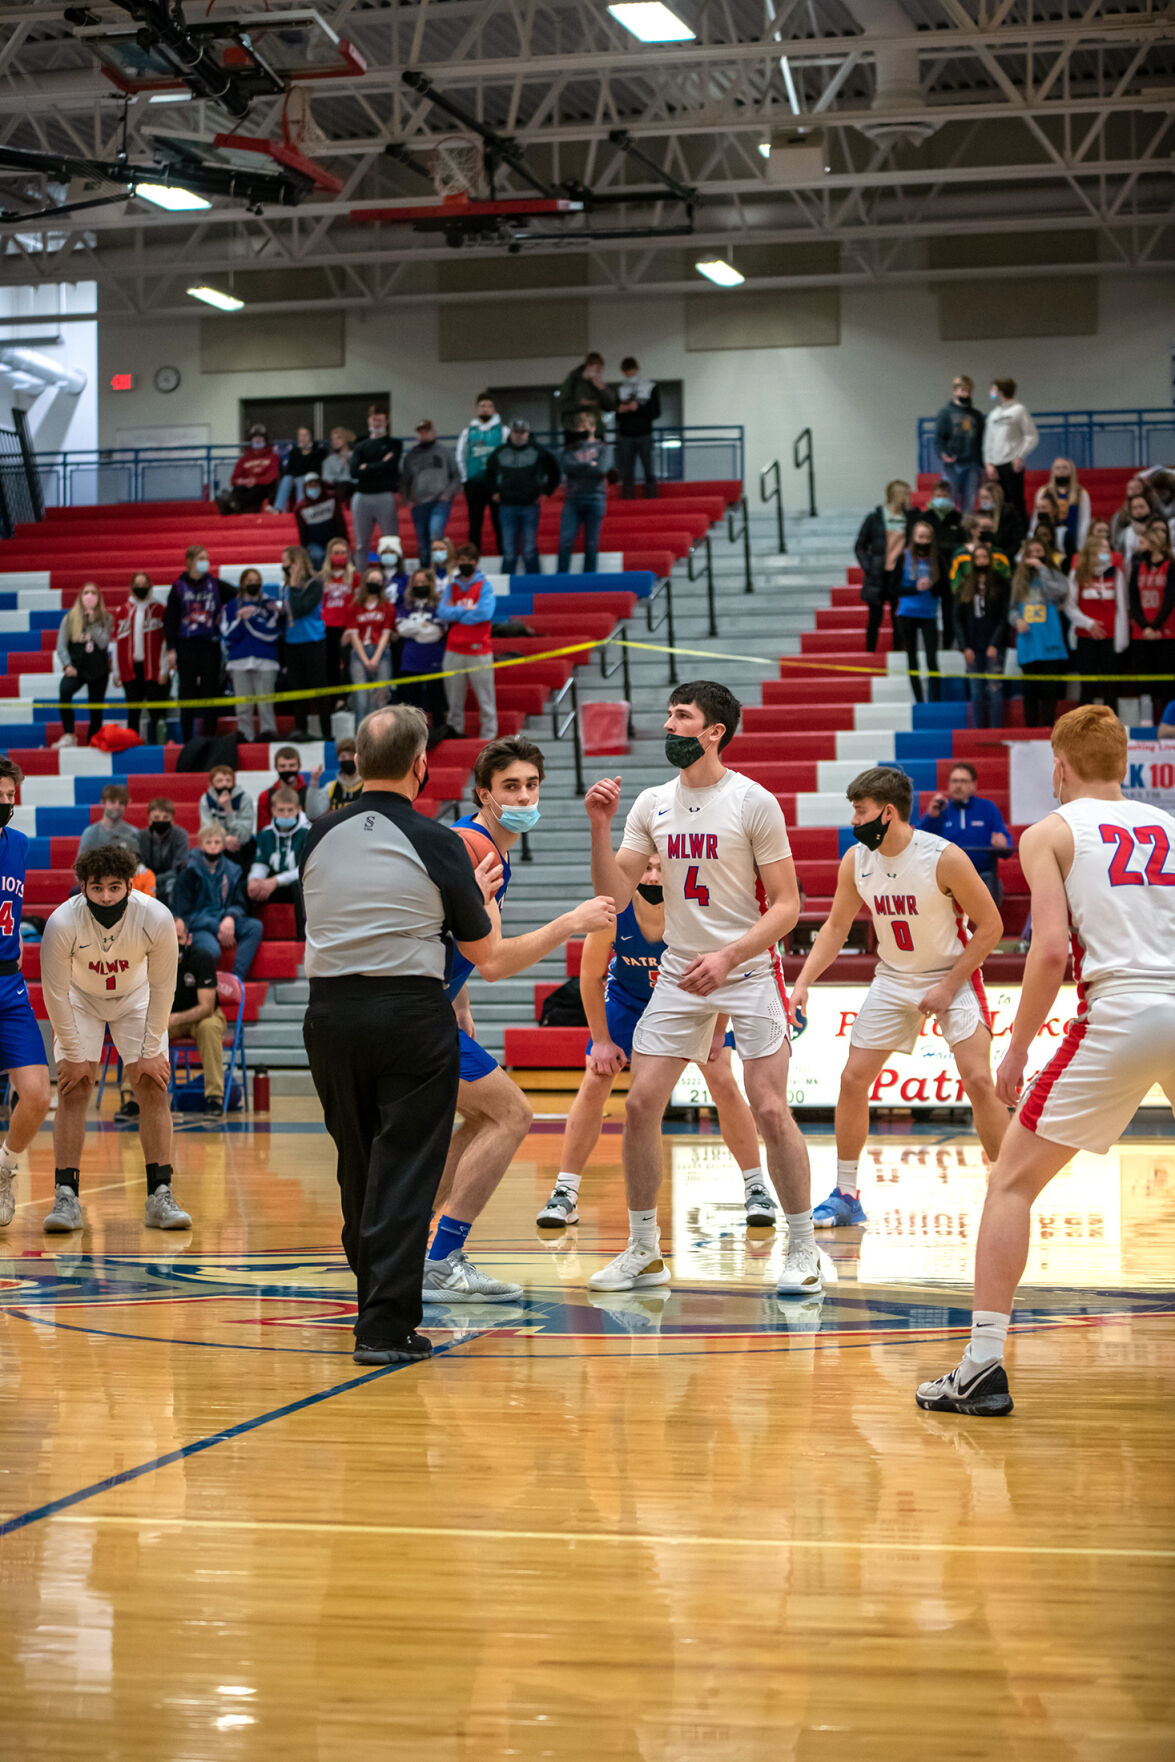 Rebels first loss to Pequot Lakes in overtime